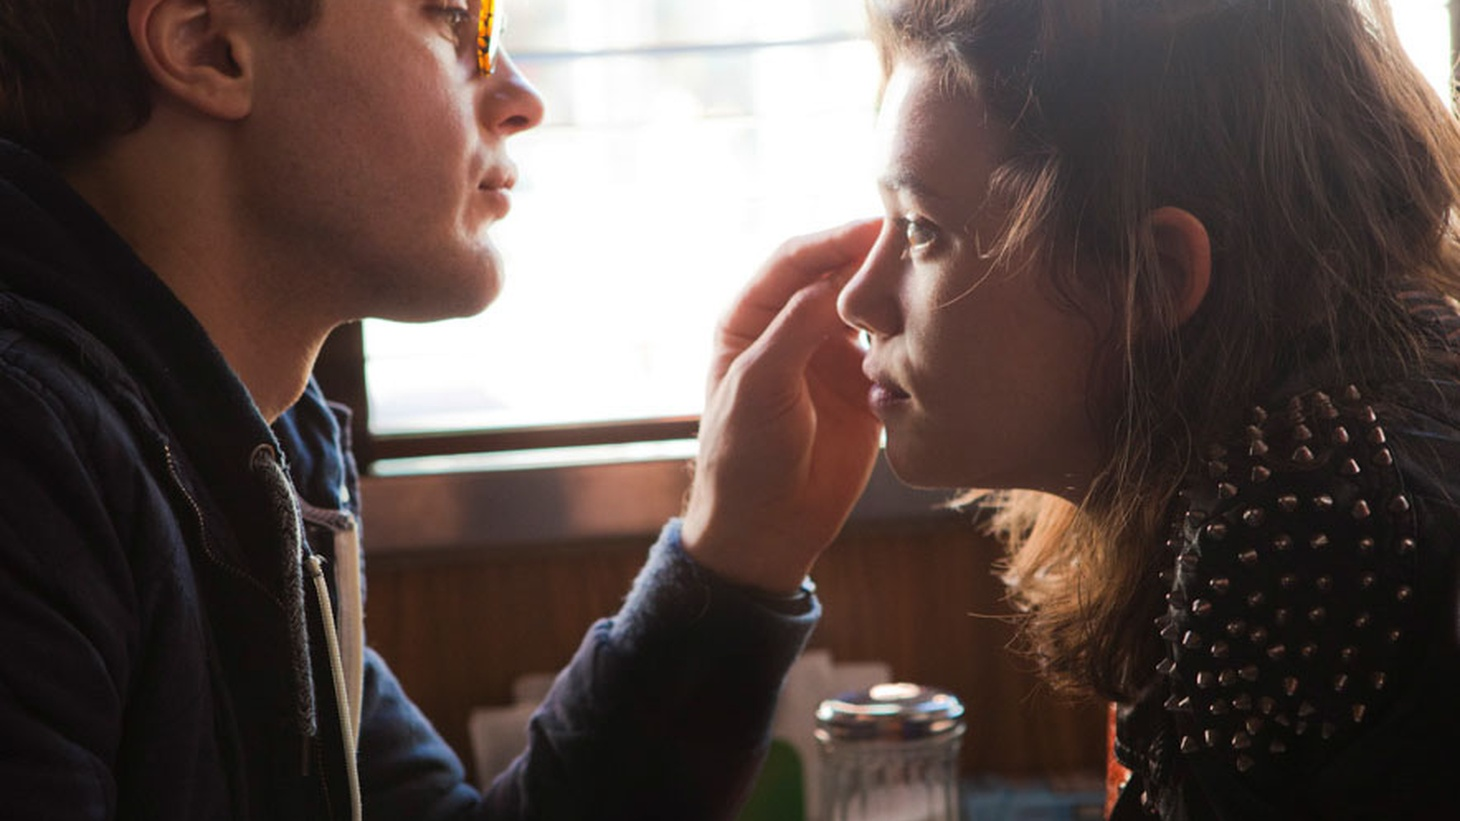 I Origins, the second feature from director Mike Cahill, features intriguing characters, but the script lays out more highways and byways than a single movie could possibly navigate.